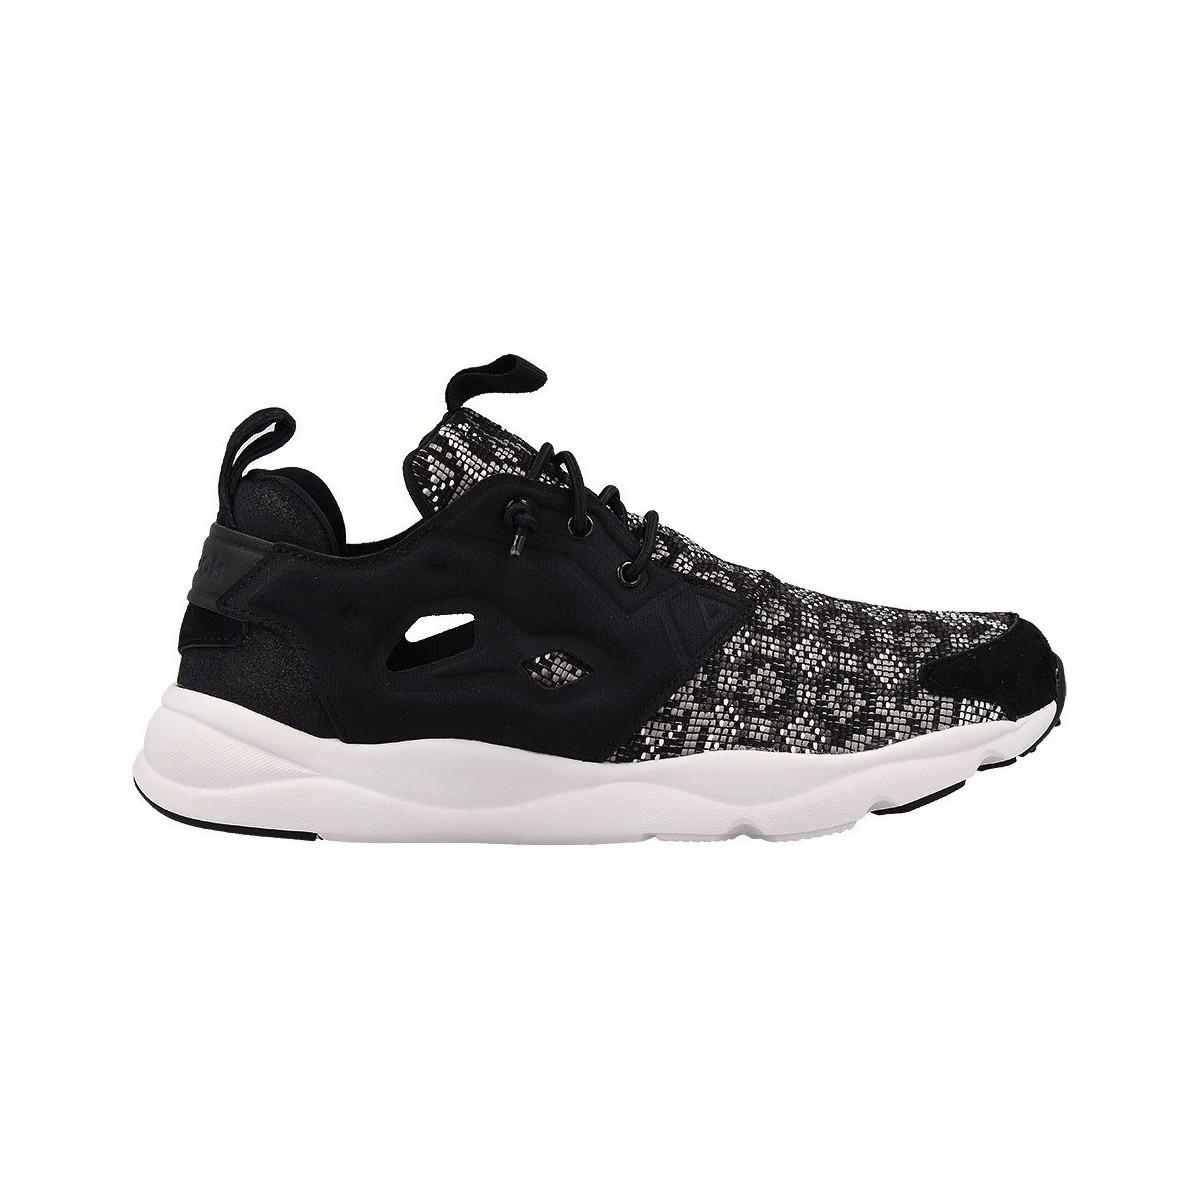 Reebok Furylite Gt Women s Shoes (trainers) In Black in Black - Lyst b1bfc9210